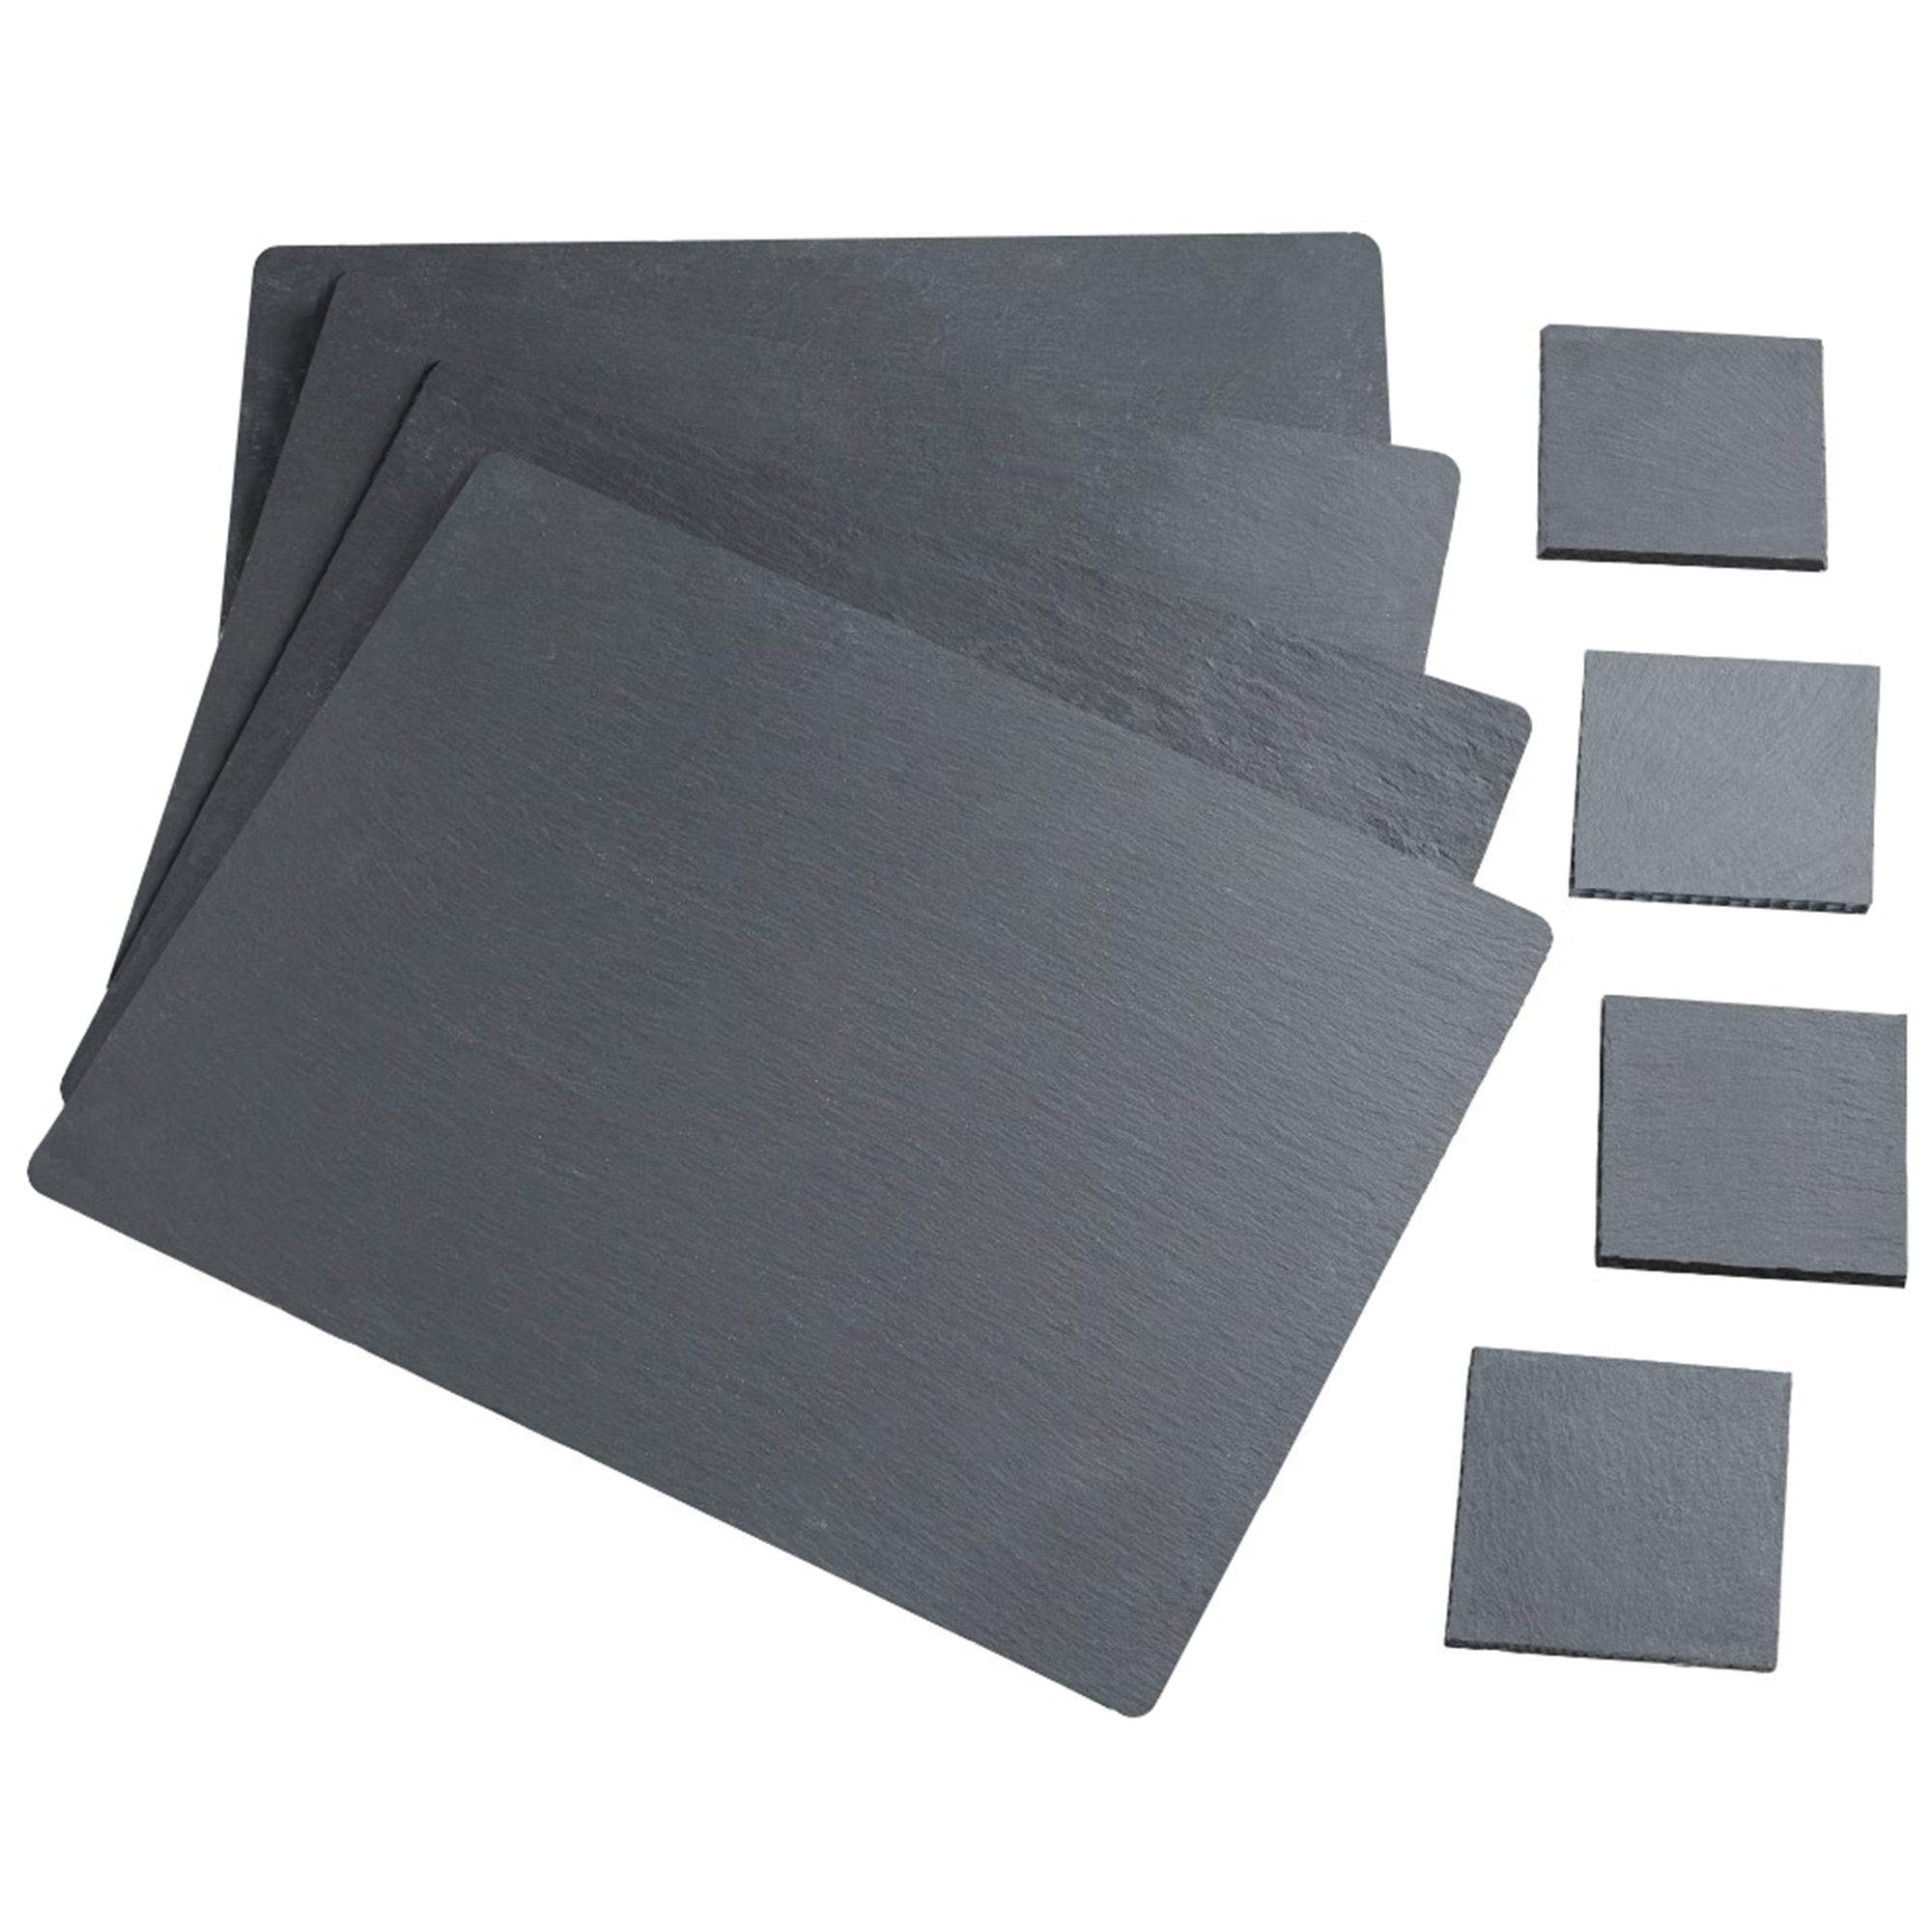 VonShef Natural Slate Placemat and Coaster Dining Table Set for 4 People, Anti Skid and Heat Resistant, 8 Piece, 16 x 12 Inches by VonShef